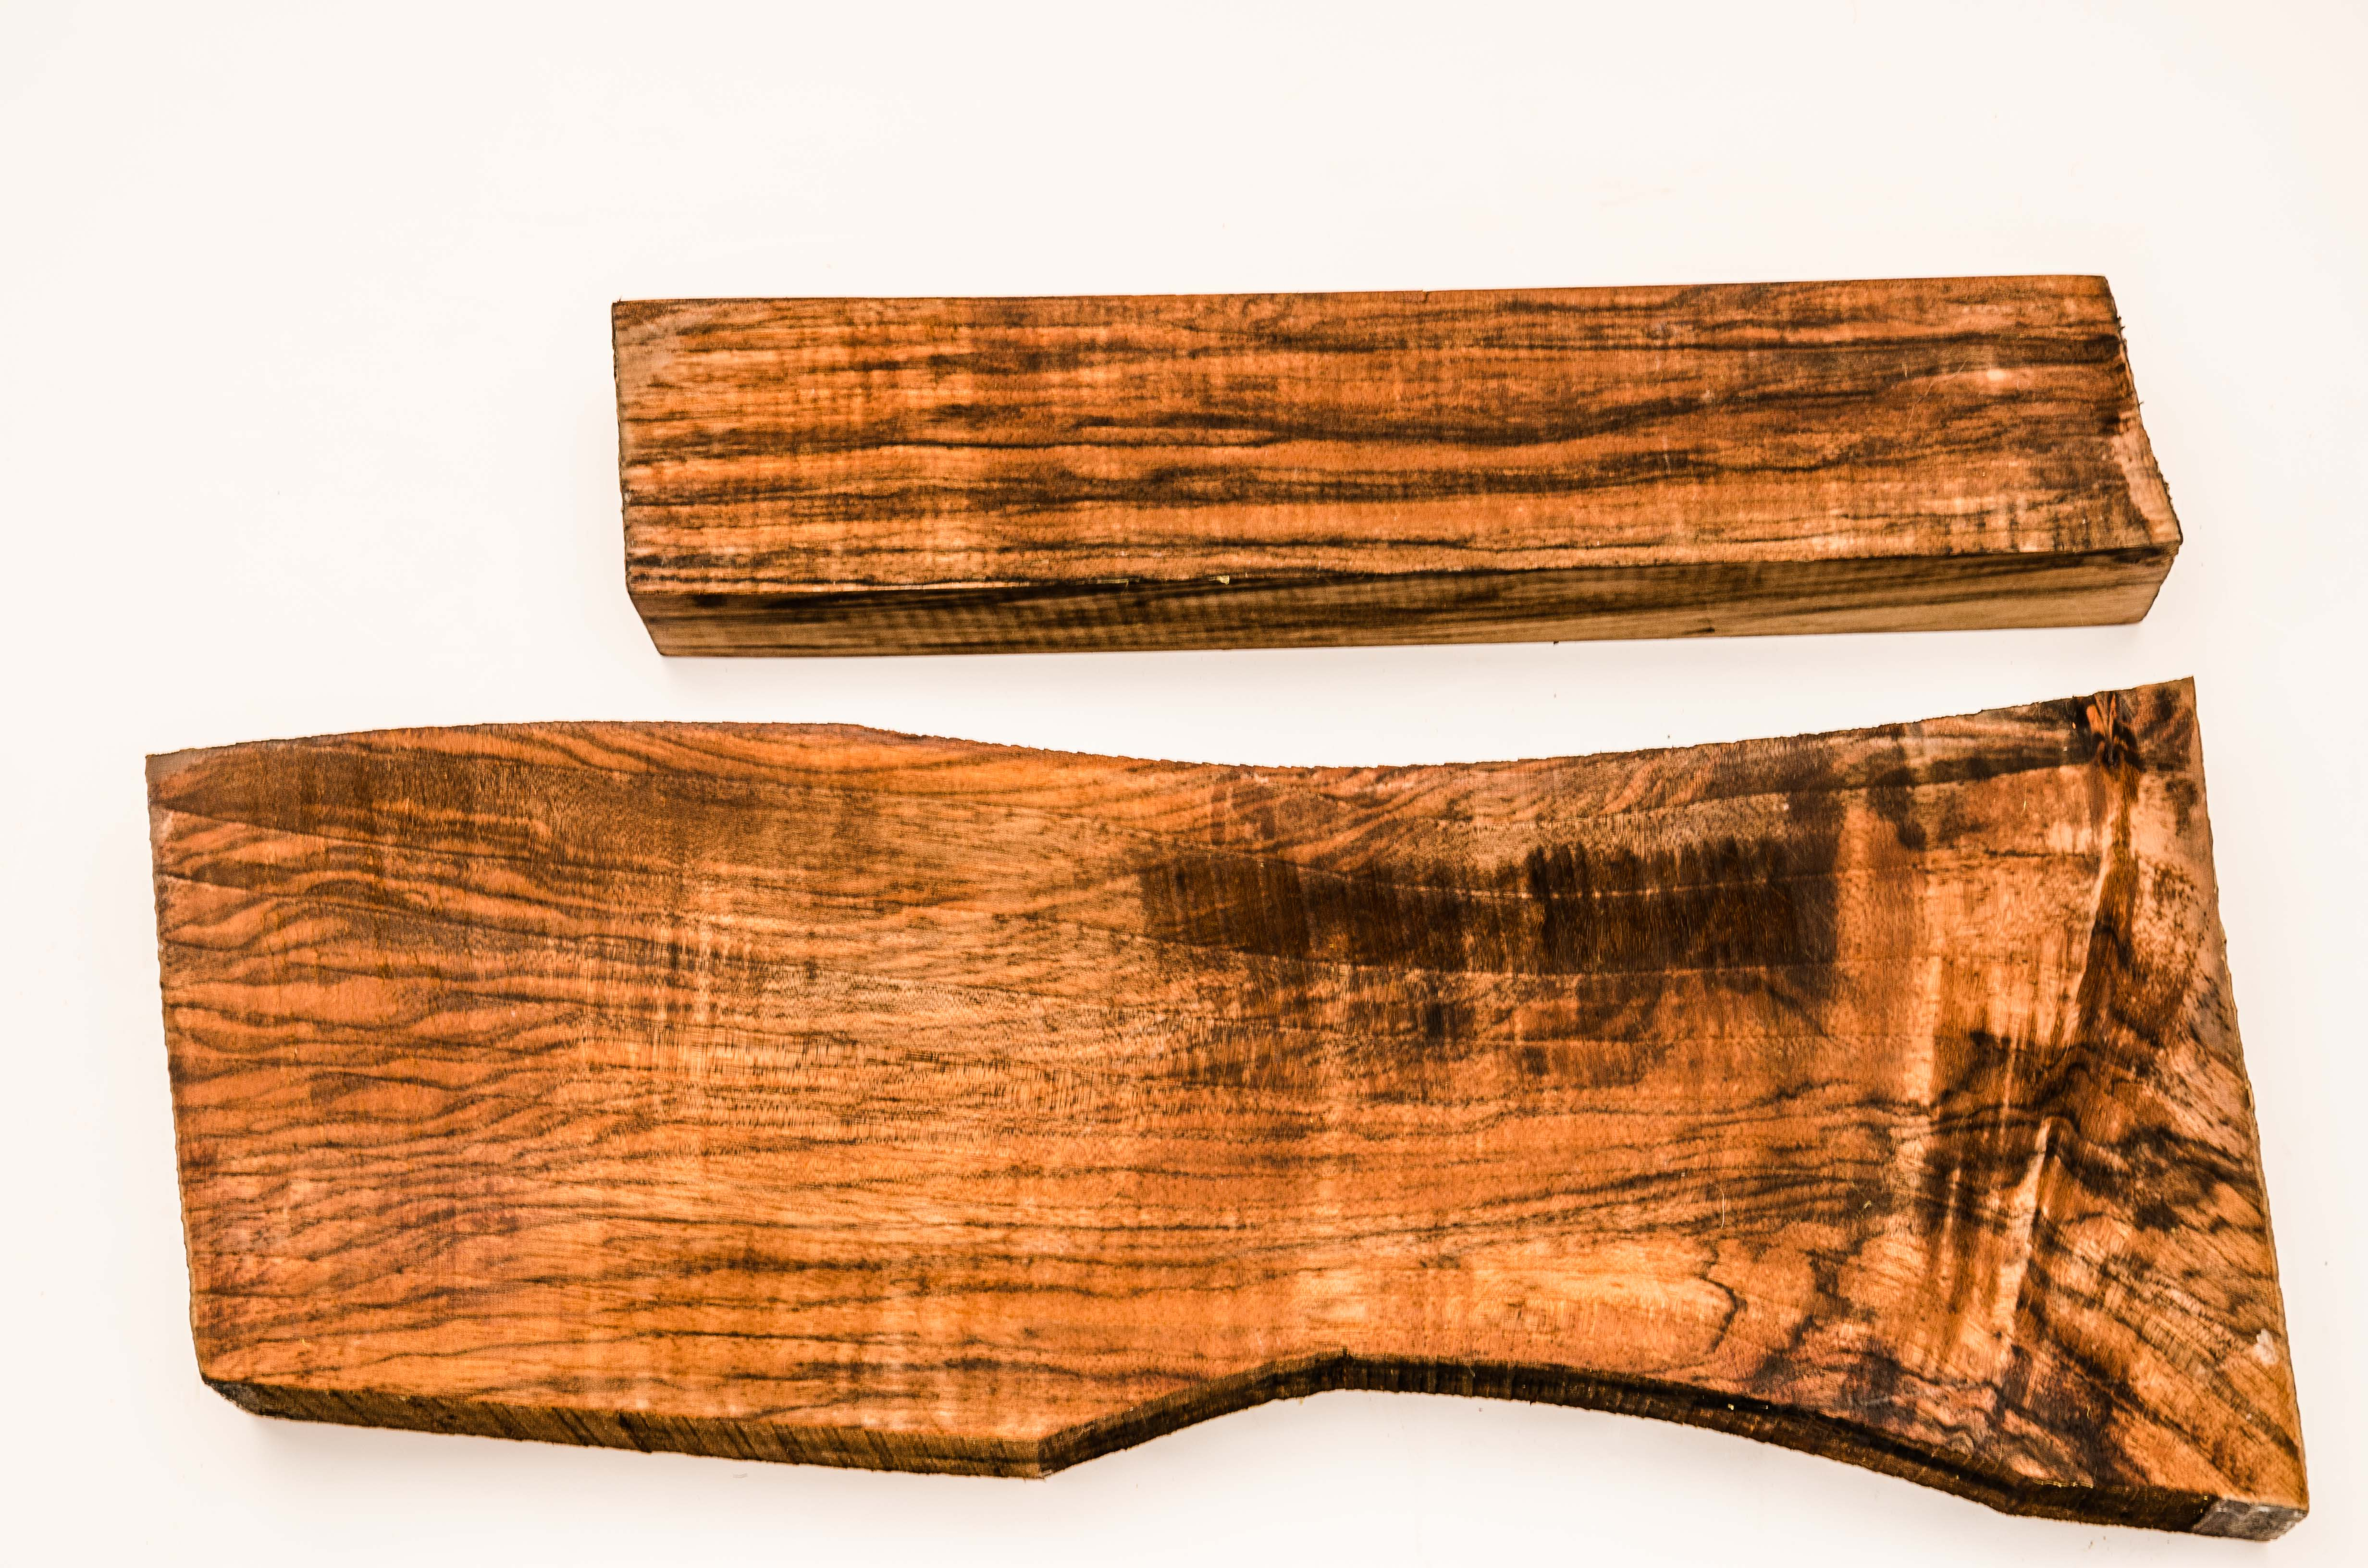 walnut_stock_blanks_for_guns_and_rifles-0260